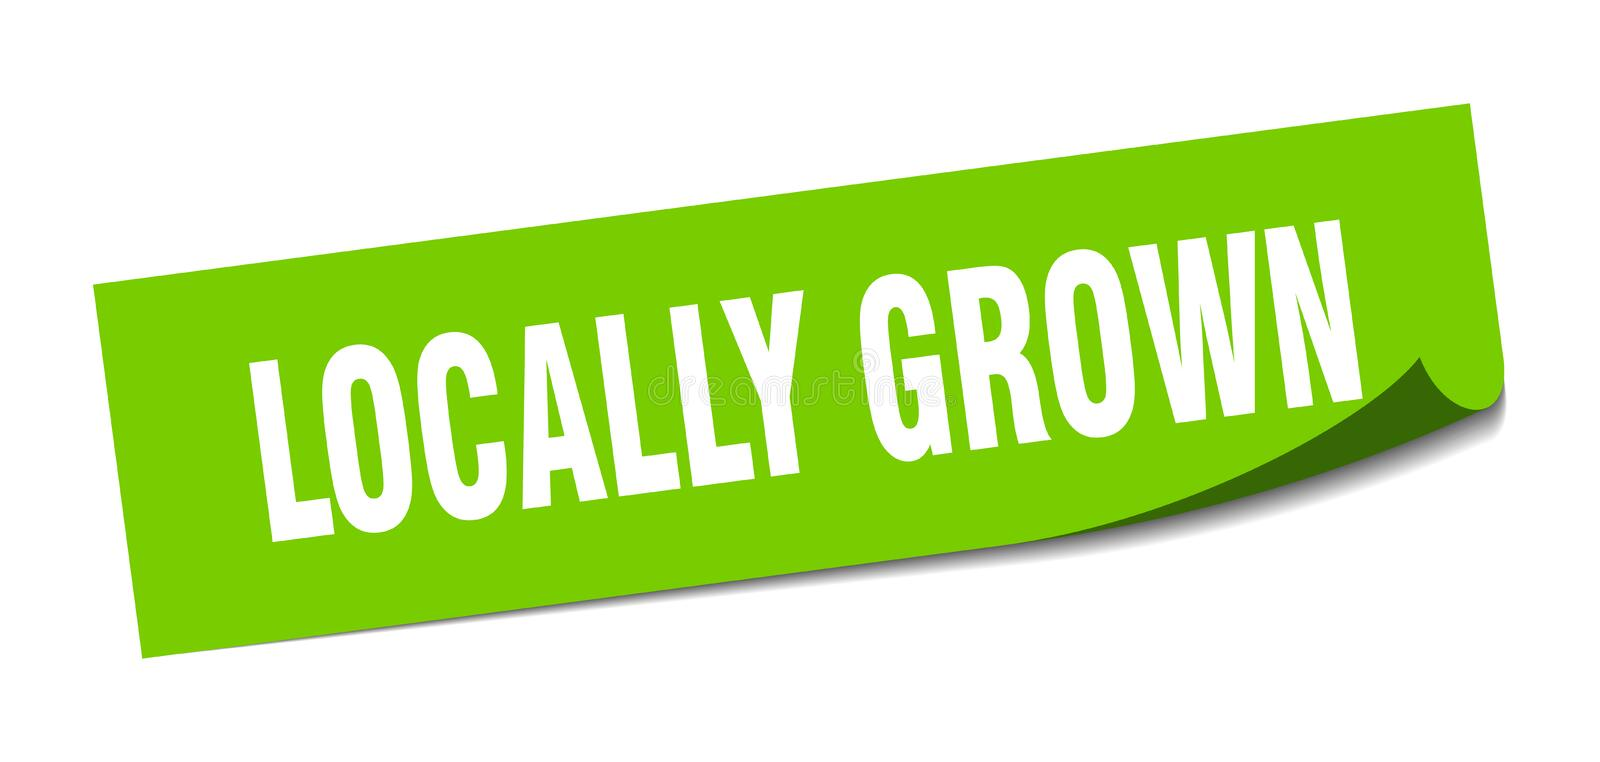 Locally grown sticker. Locally grown square sign. locally grown stock illustration